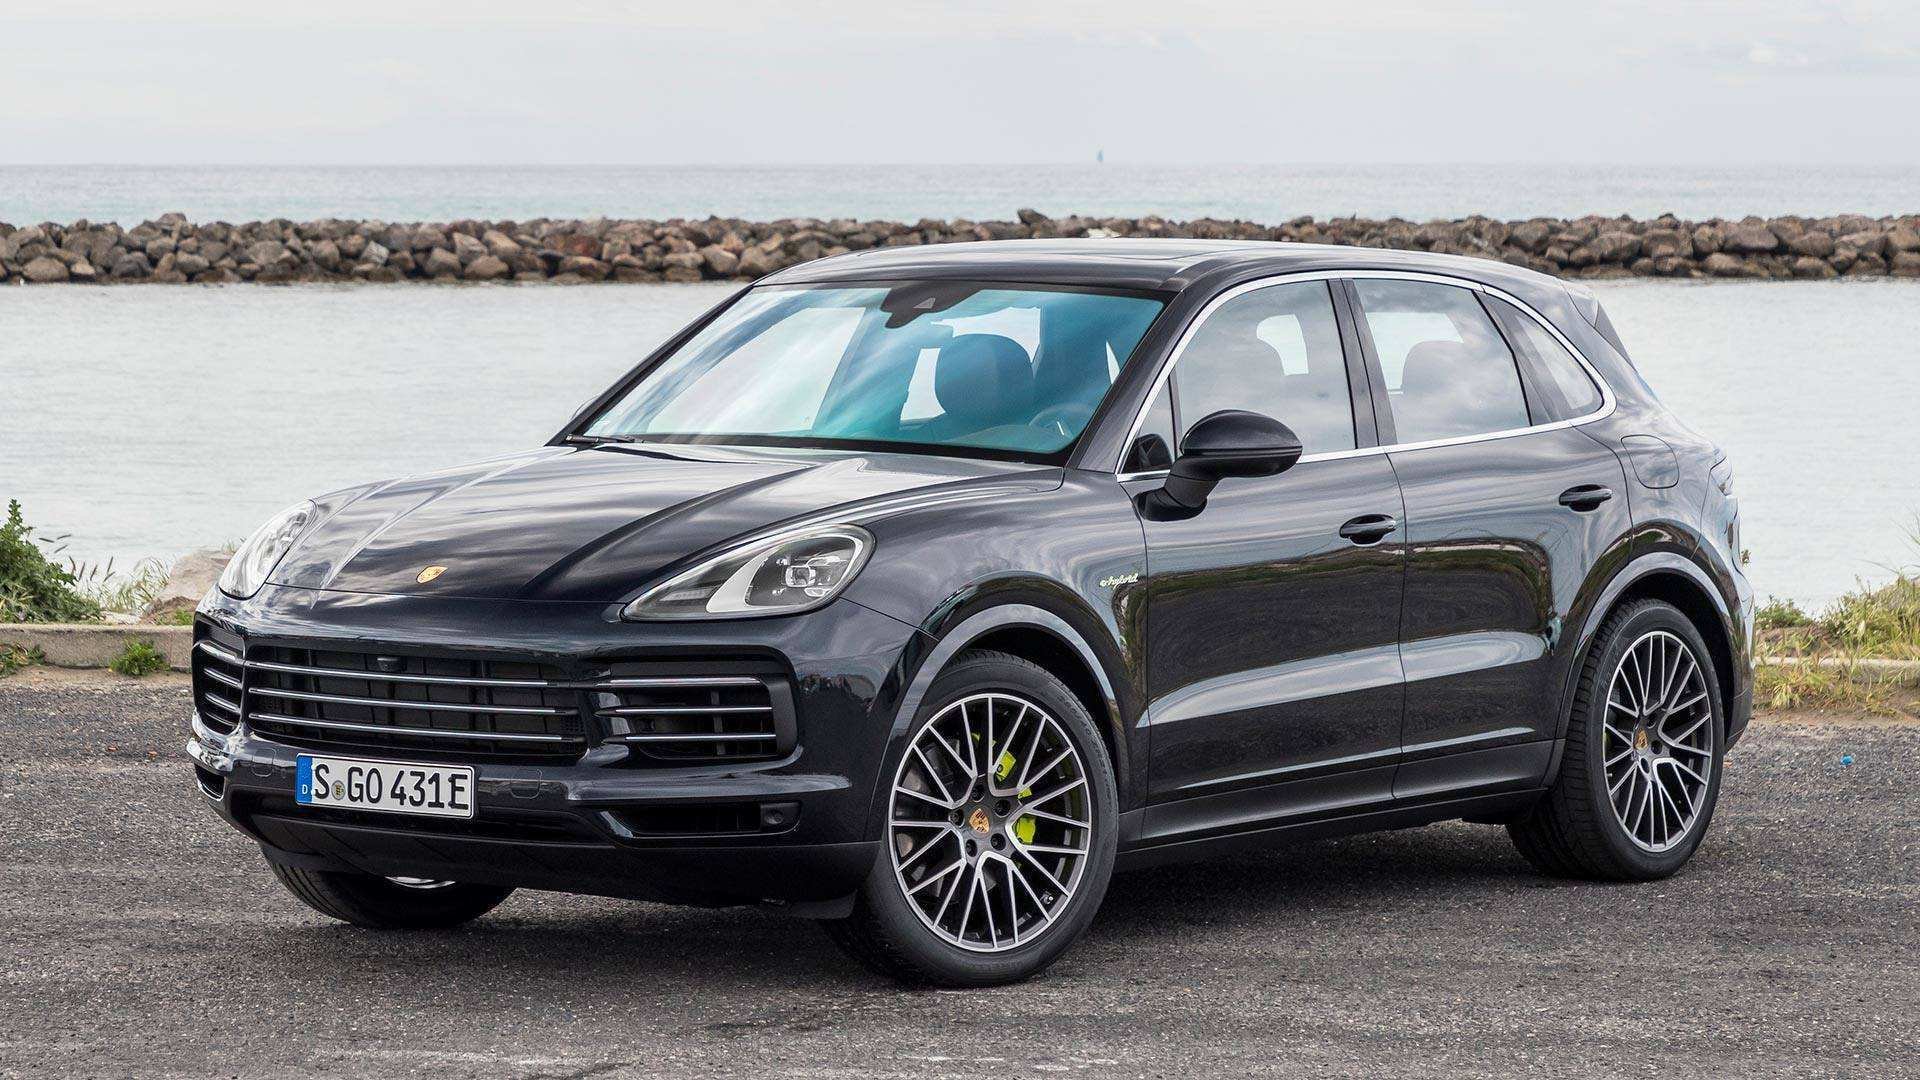 89 The Best 2019 Porsche Cayenne Redesign